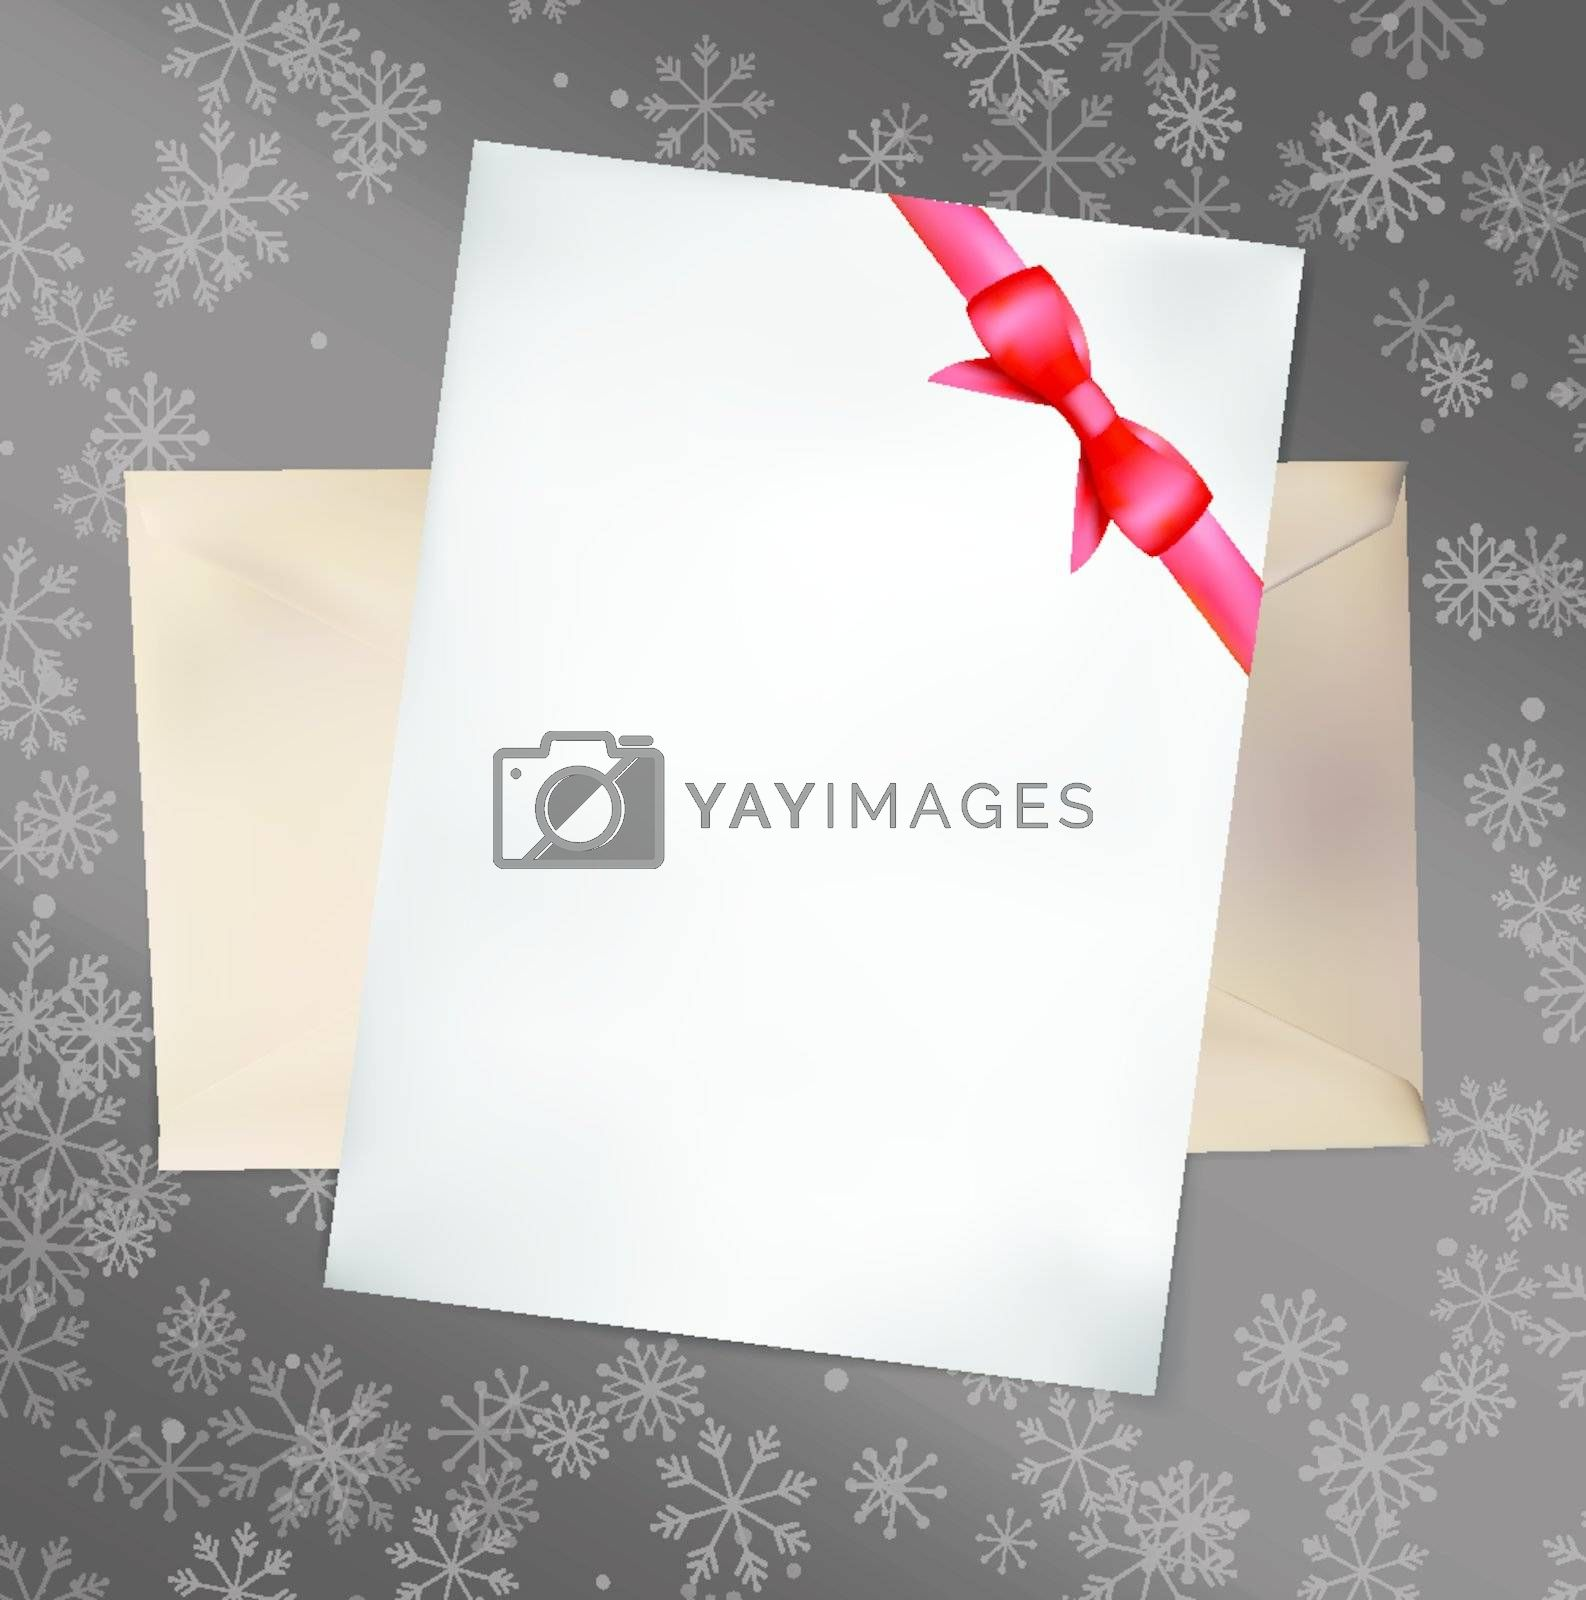 Royalty free image of Paper Card with Red Bow. Vector illustration. by Olka